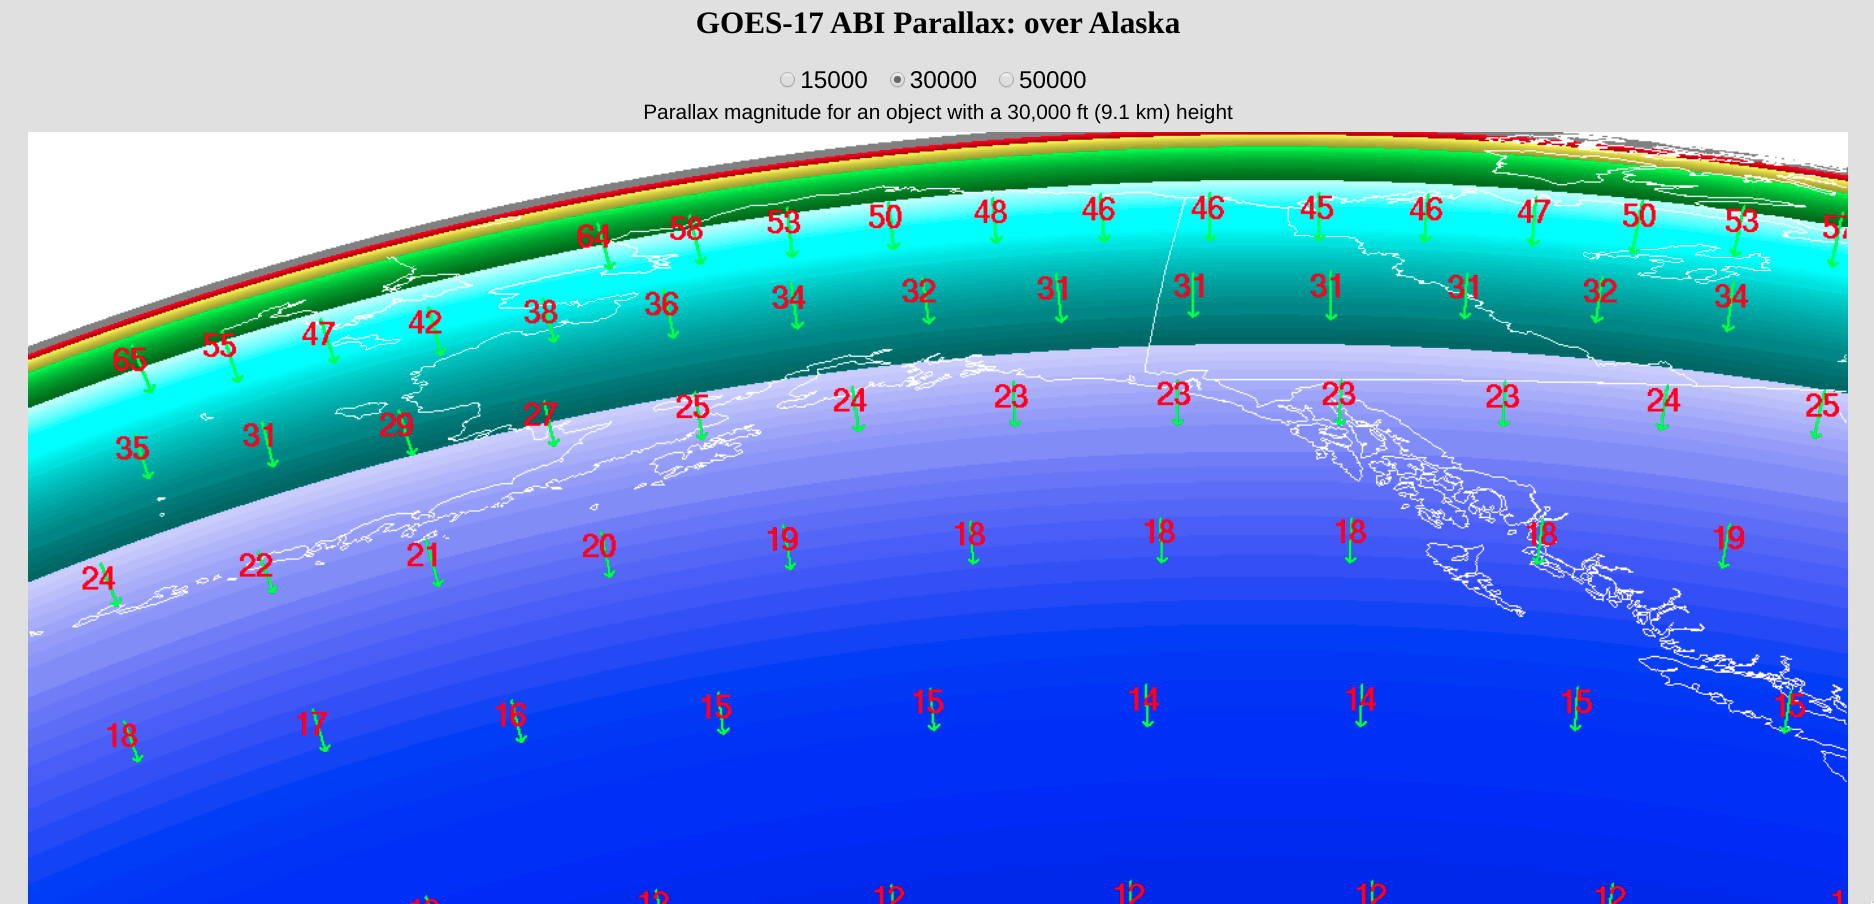 Plots of GOES-17 parallax correction vectors and displacements (in km) for a 30,000-foot (9.1 km) cloud feature at select points over the Alaska region [click to enlarge]